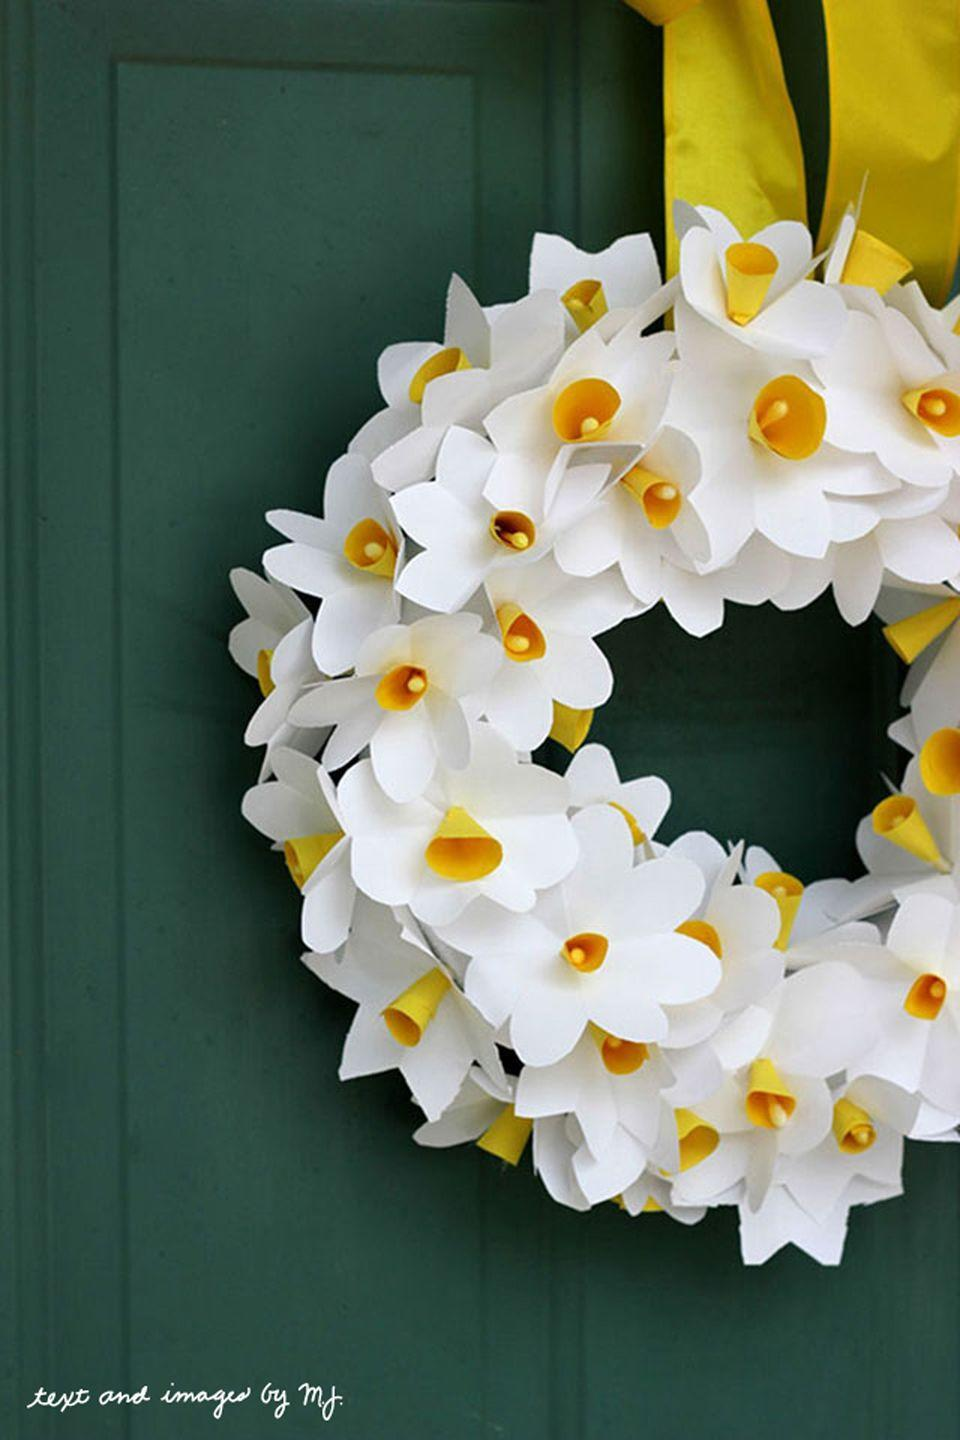 """<p>Welcome Mom home with a <a href=""""https://www.countryliving.com/diy-crafts/g4395/summer-wreaths/"""" rel=""""nofollow noopener"""" target=""""_blank"""" data-ylk=""""slk:homemade wreath"""" class=""""link rapid-noclick-resp"""">homemade wreath</a> on her front door. She can leave it up all summer long.</p><p><strong>Get the tutorial at <a href=""""http://www.classic-play.com/family-ties-make-paper-daffodils-with-your-kids/"""" rel=""""nofollow noopener"""" target=""""_blank"""" data-ylk=""""slk:Classic Play"""" class=""""link rapid-noclick-resp"""">Classic Play</a>.</strong></p><p><strong>What you'll need: </strong><em>yellow construction paper ($4 for pack of 50, <a href=""""https://www.amazon.com/SunWorks-Construction-12-Inches-18-Inches-50-Count/dp/B001E6CQGK"""" rel=""""nofollow noopener"""" target=""""_blank"""" data-ylk=""""slk:amazon.com"""" class=""""link rapid-noclick-resp"""">amazon.com</a>)</em></p>"""